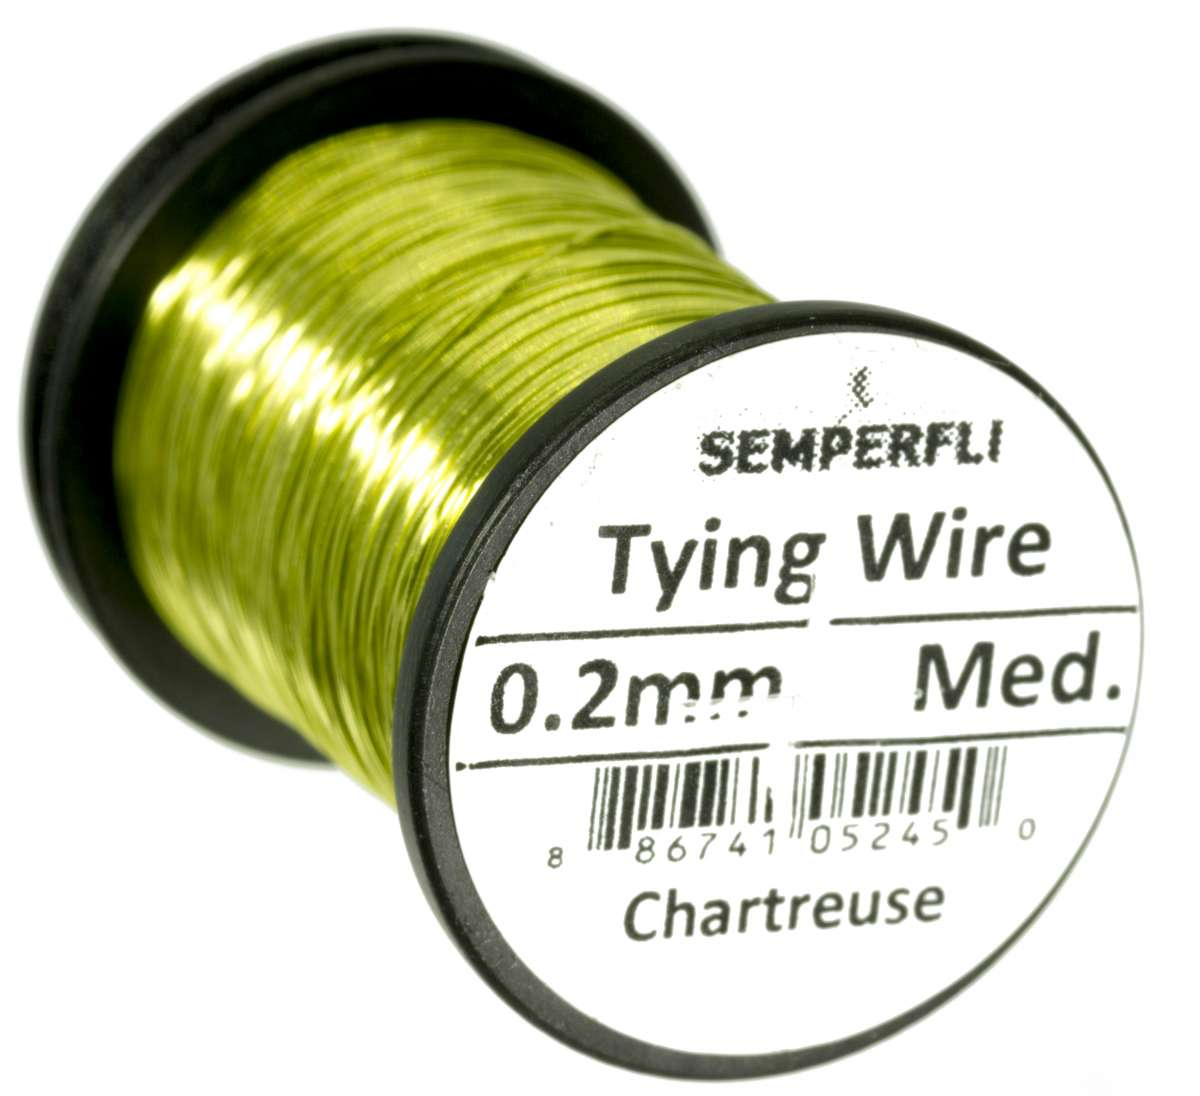 lurewire chartreuse